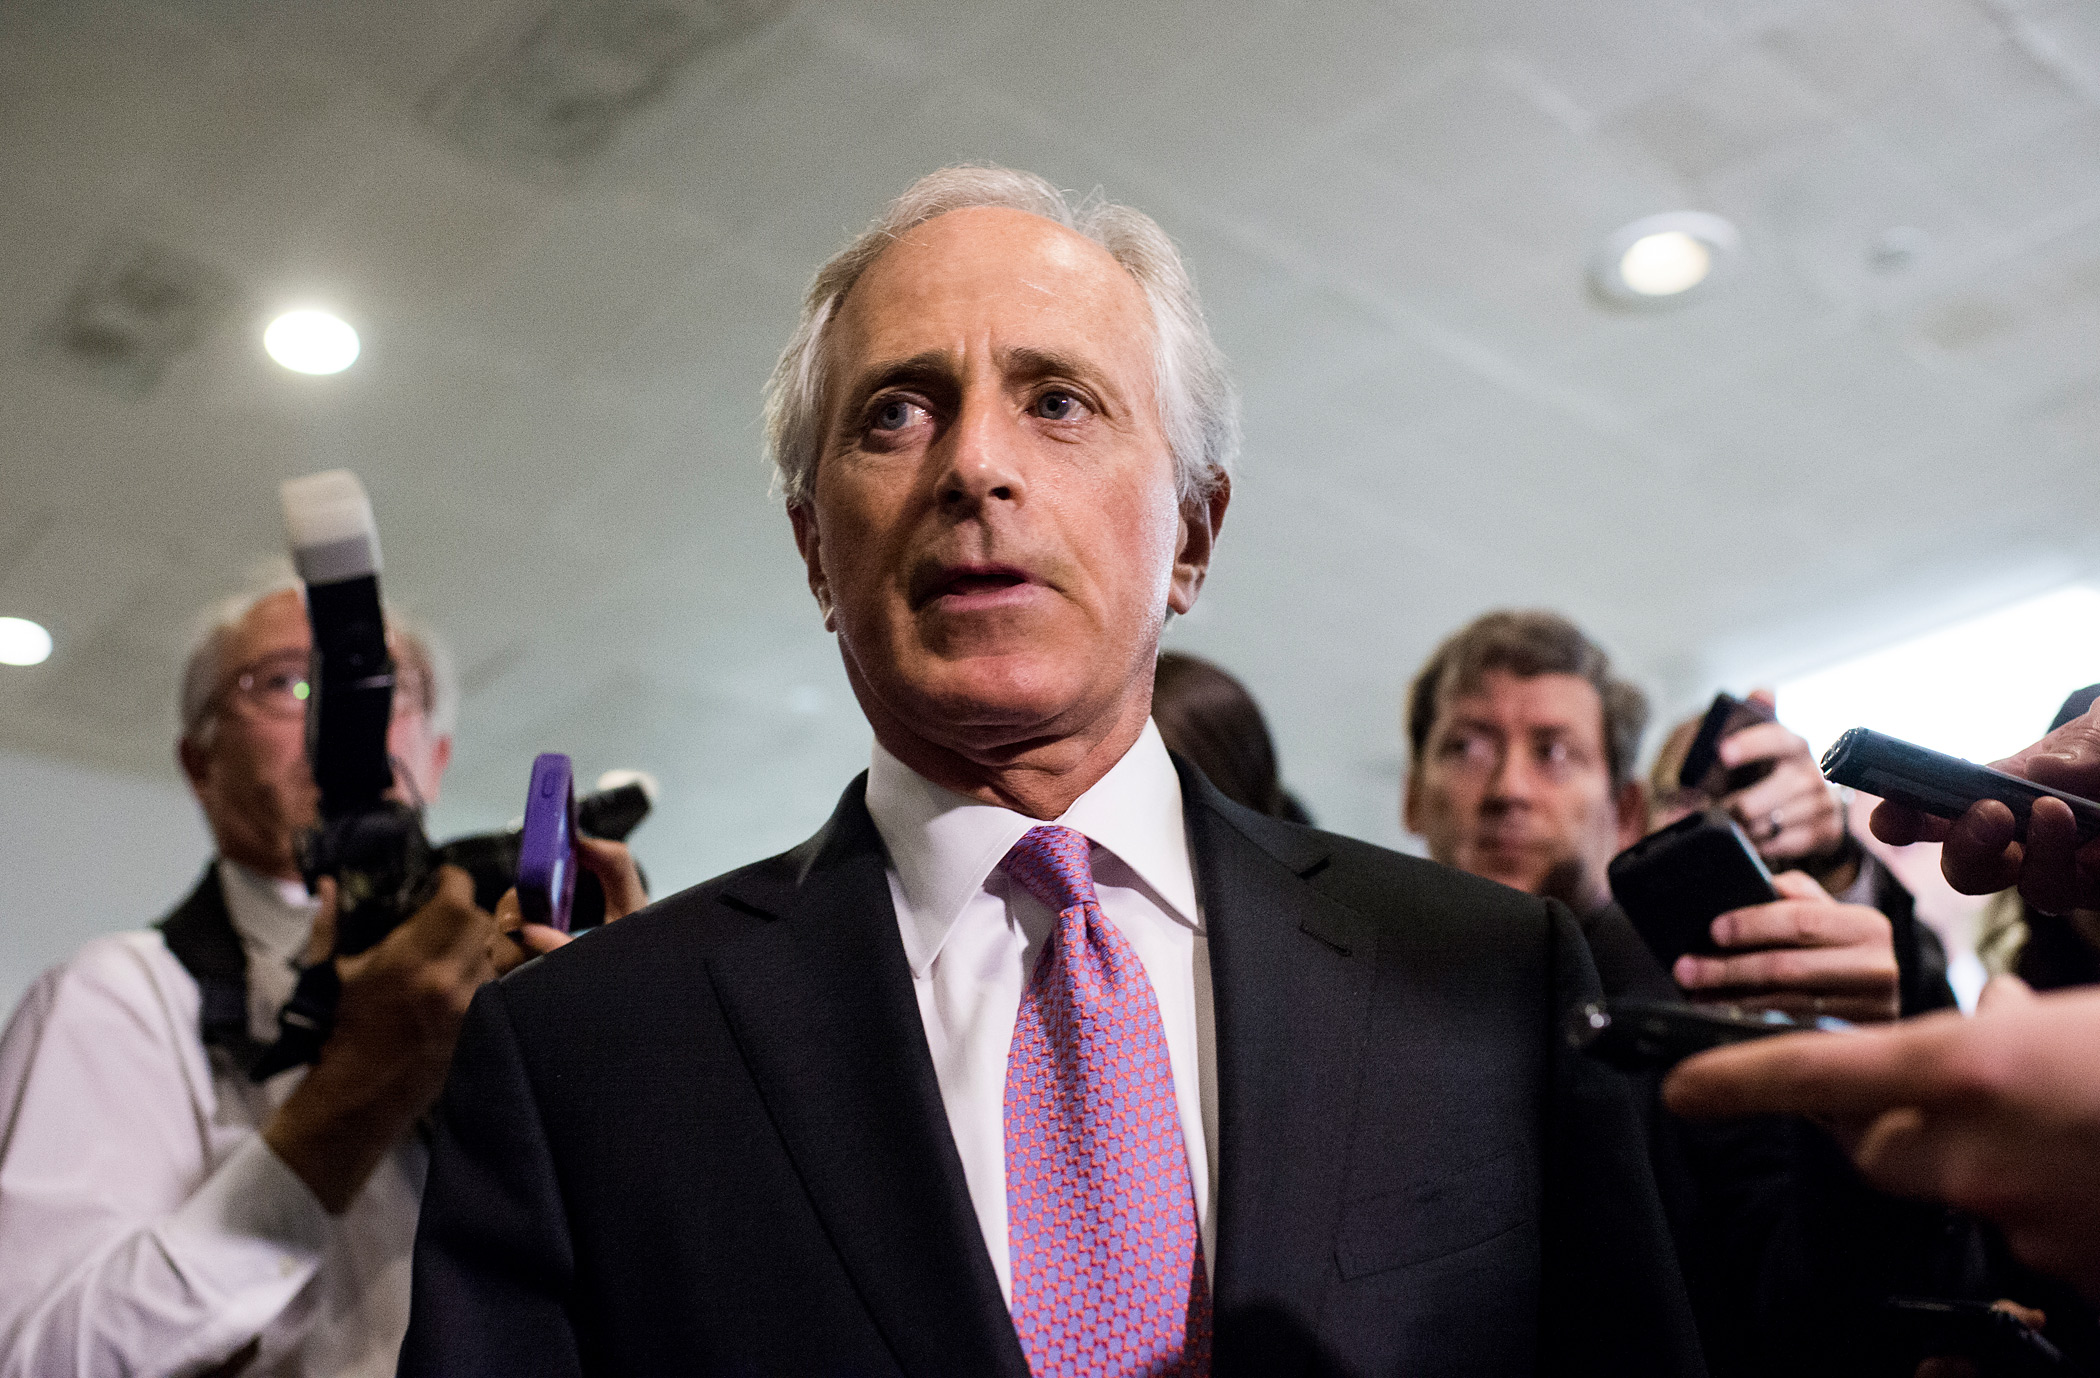 Sen. Bob Corker, Senate Foreign Relations chairman, arrives for a briefing on Iran nuclear negotiations with Secretary of State John Kerry and President Obama's chief of staff Jack Lew in the Capitol on April 14, 2015.